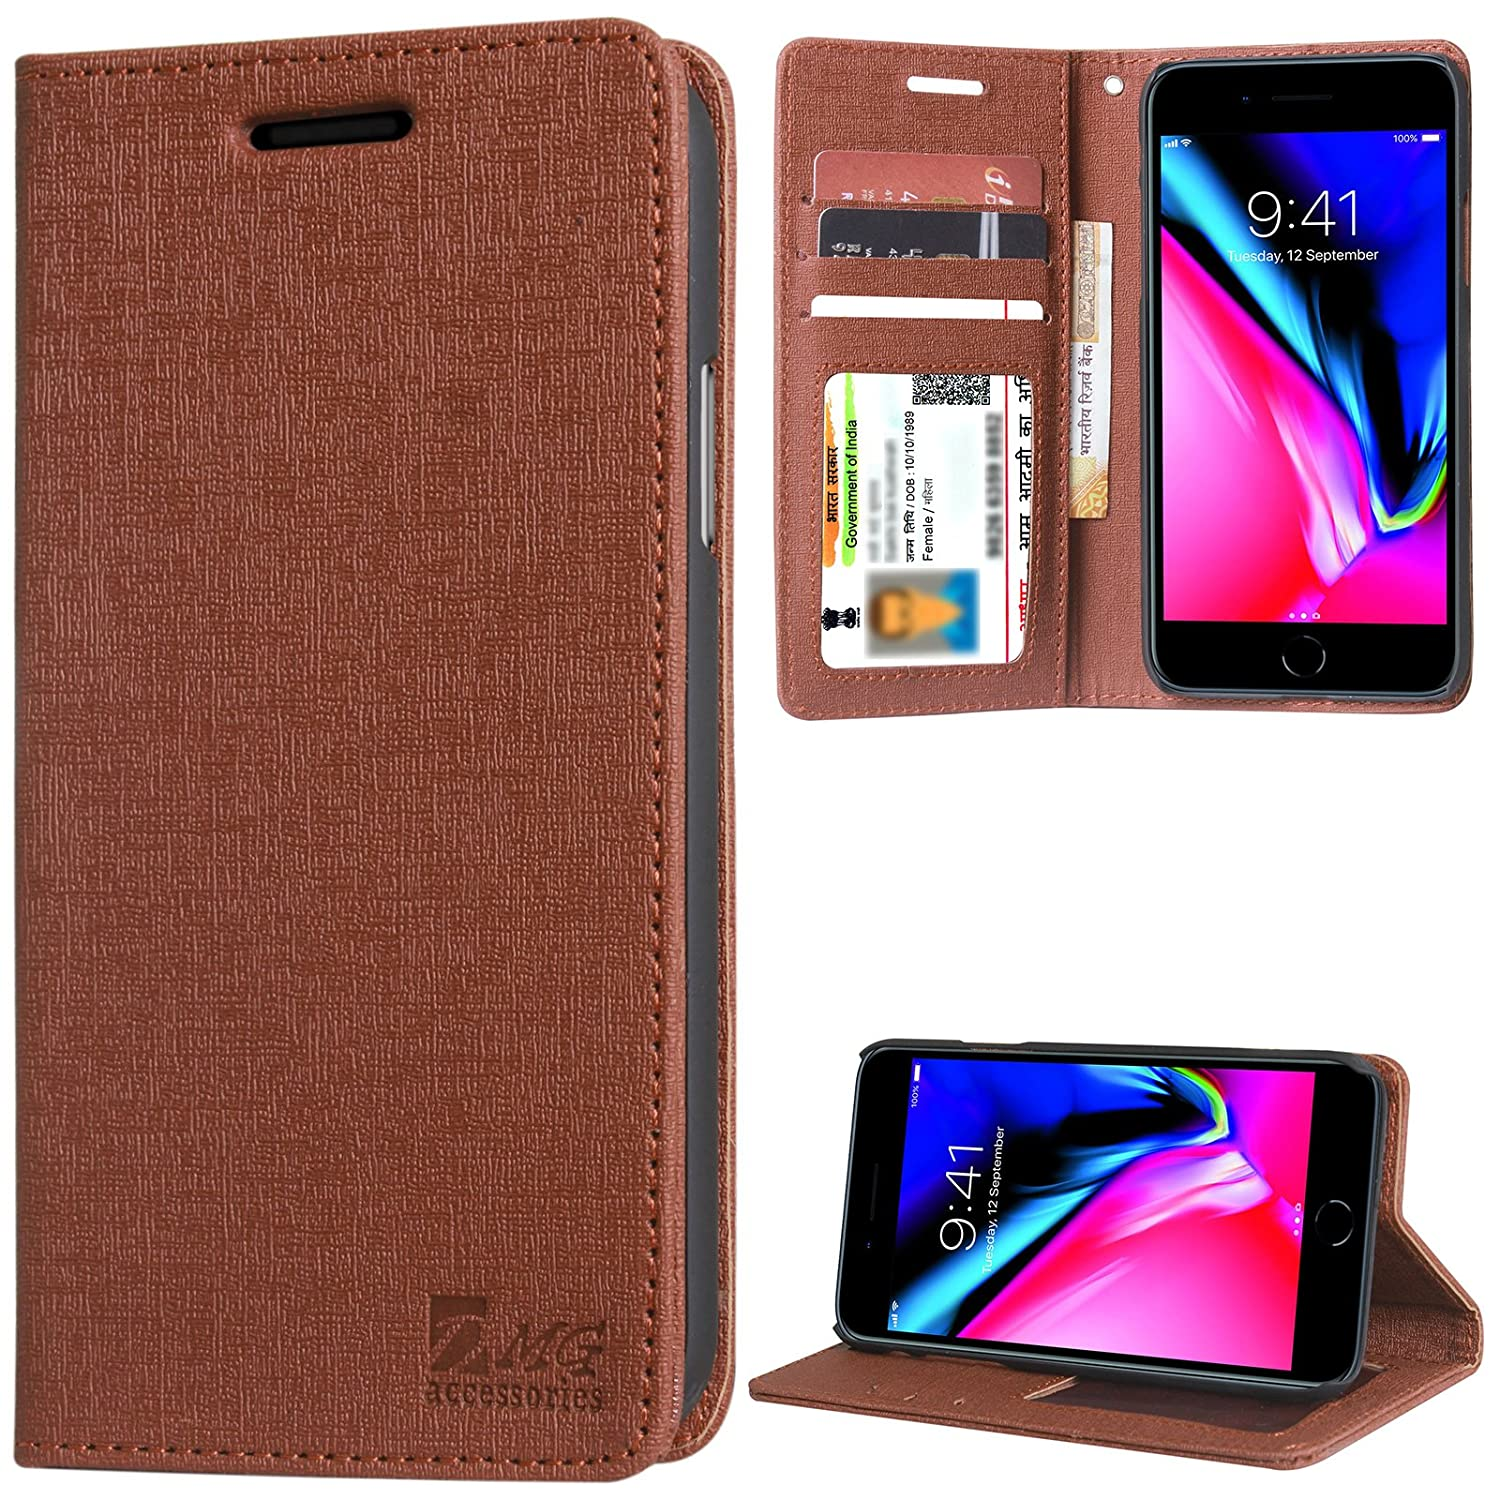 timeless design cac45 5b93c DMG Leather Flip Cover for iPhone 7 Plus, Premium Wallet Flip Cover Stand  Case for Apple iPhone 7 Plus (Texture ID Brown)